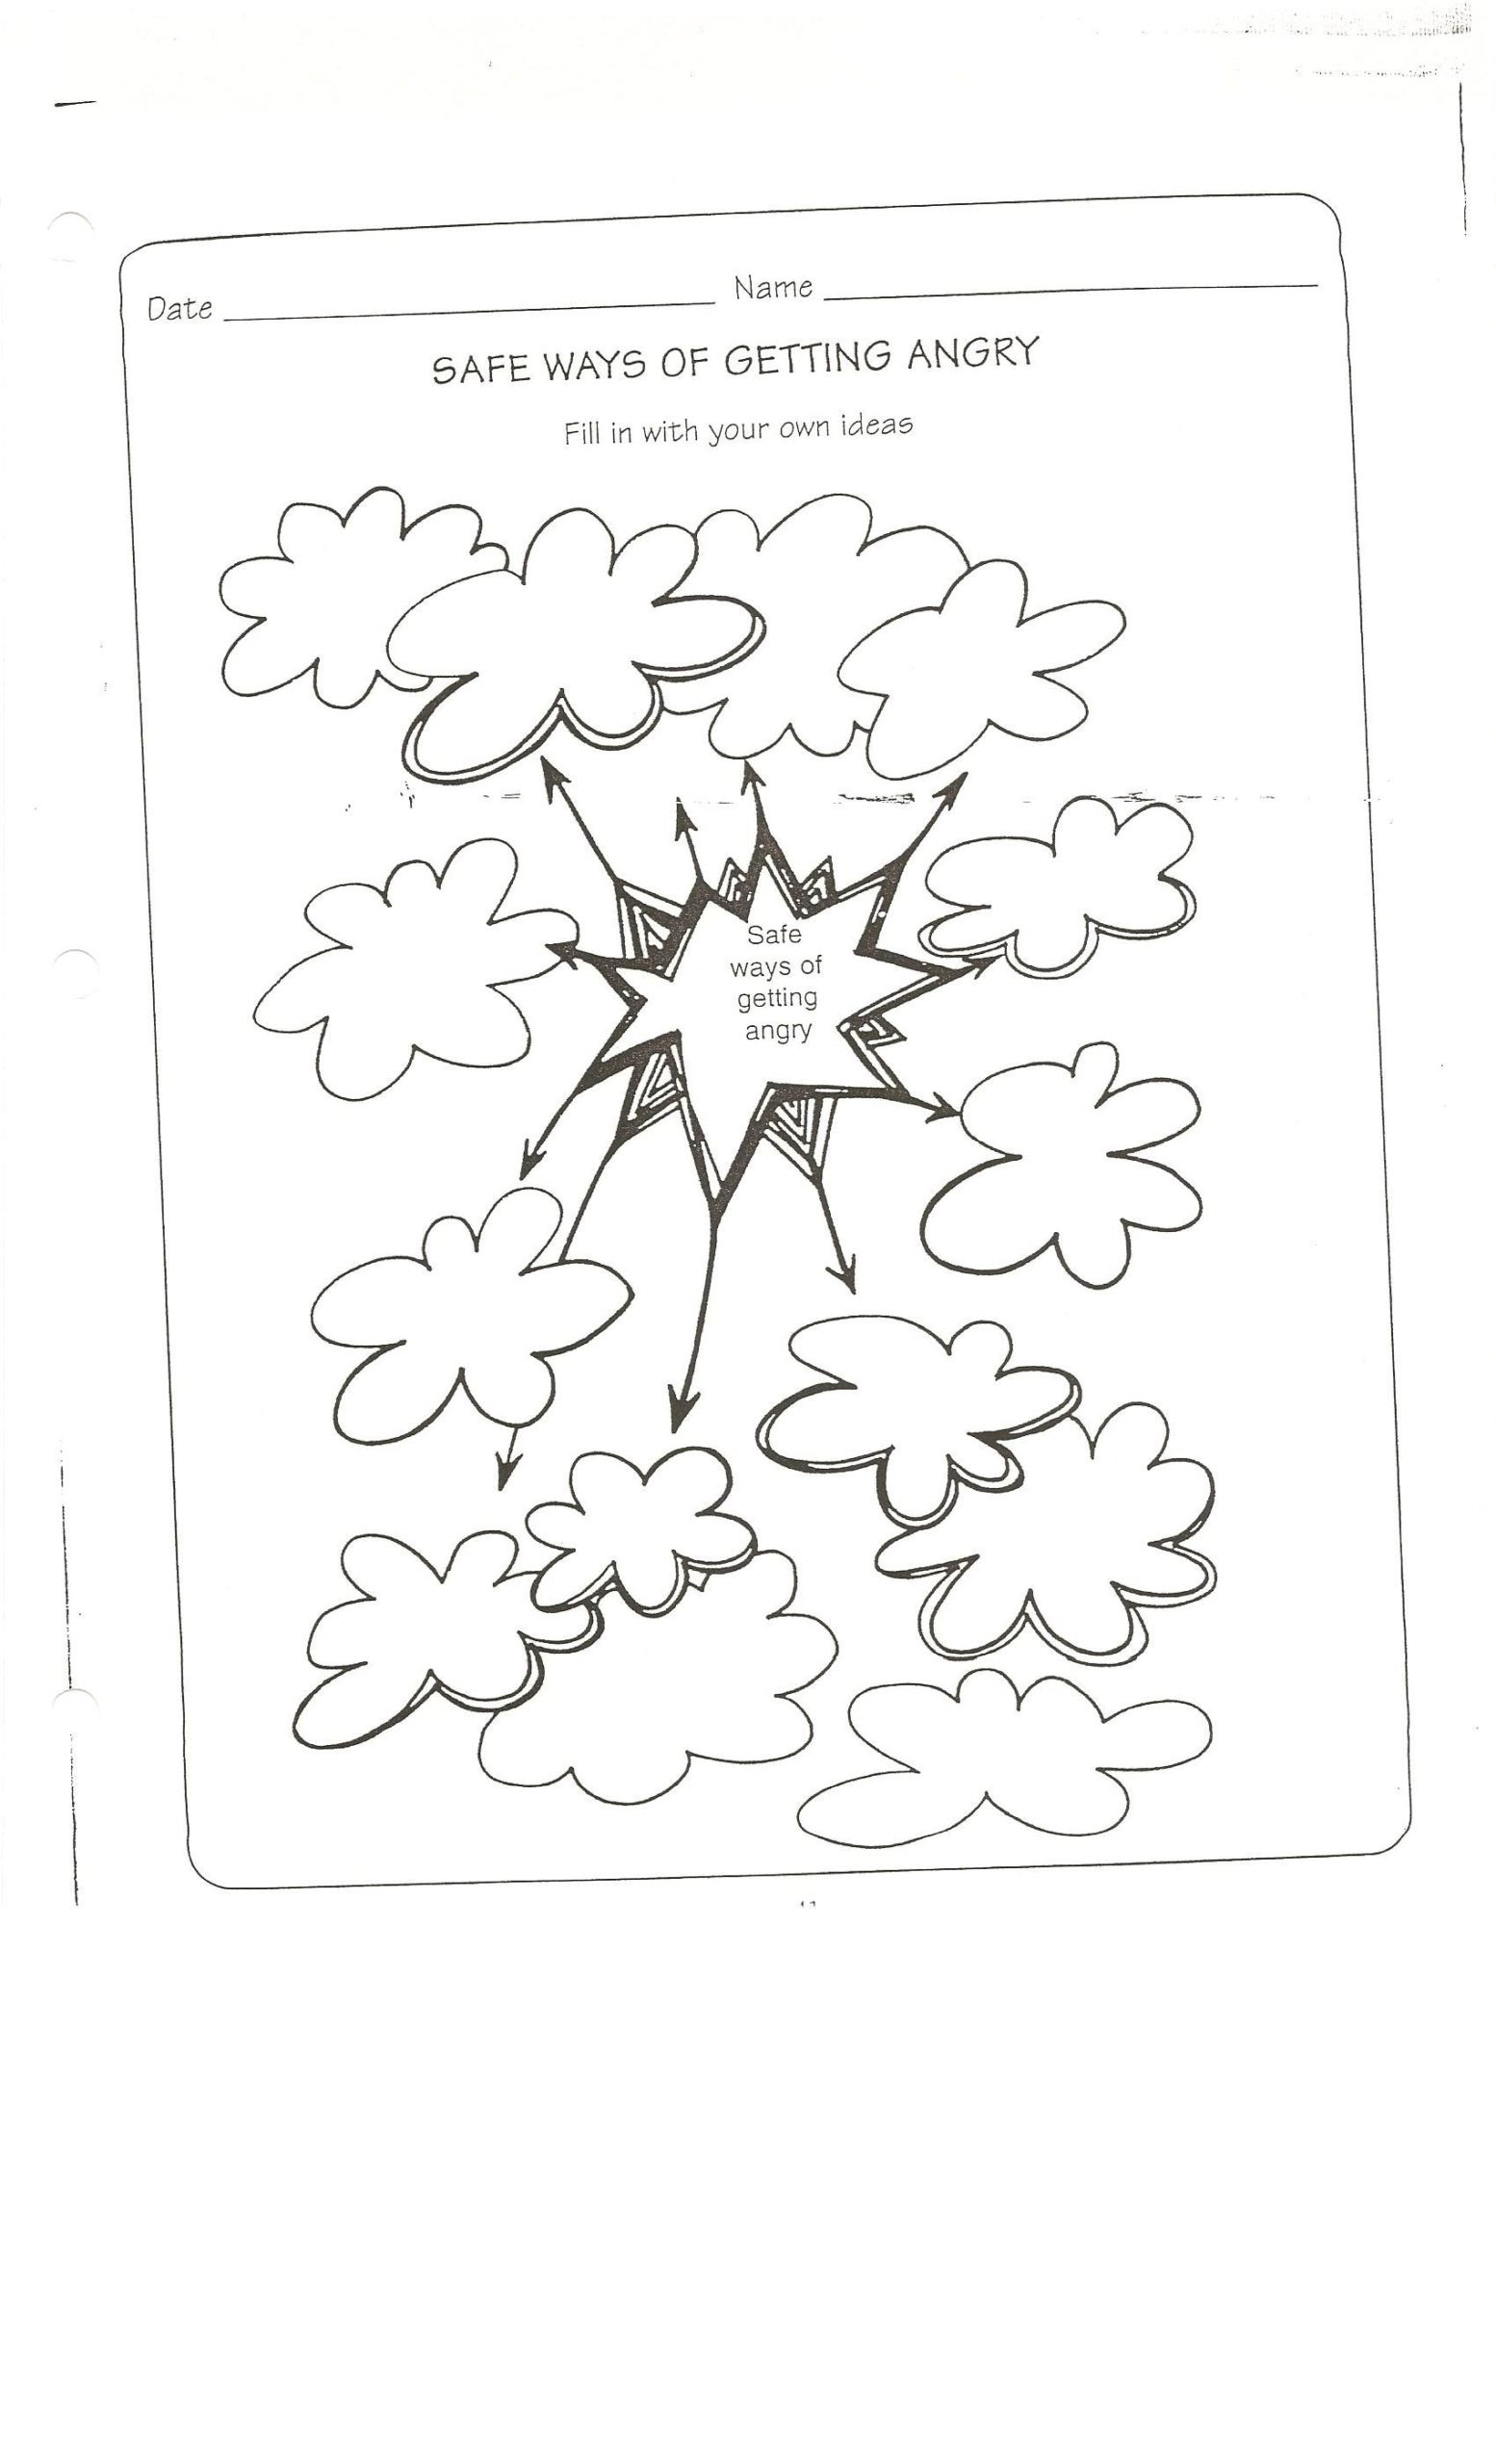 Free Printable Feelings Worksheets Safe Way to Get Angry Worksheet Conflict Resolution Talking